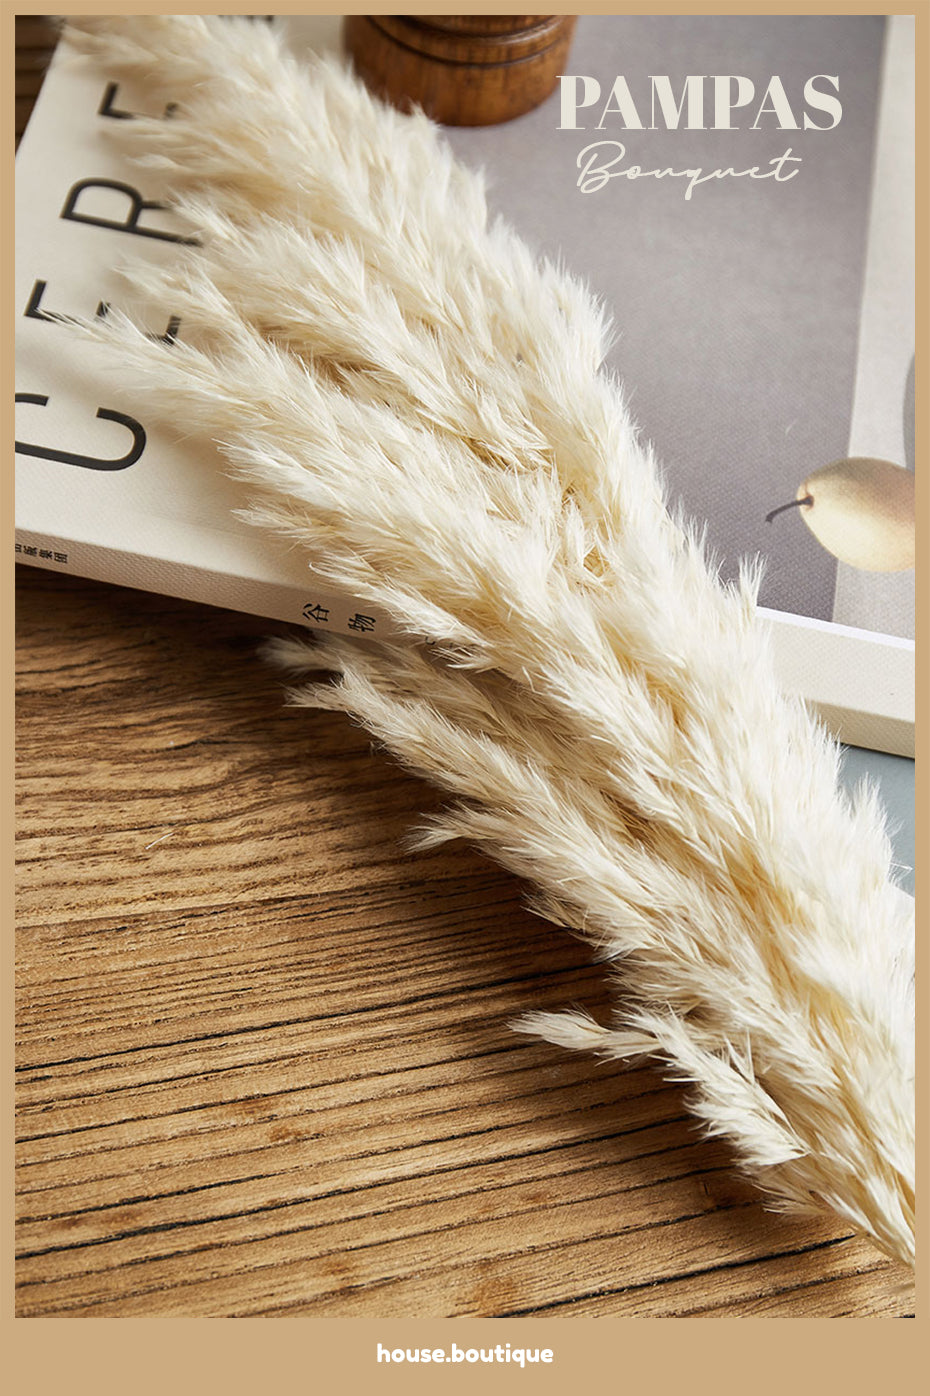 Real Pampas Grass Natural Dried Flowers Modern Bohemian Home Styling Bleached White Color Fluffy Natural Floral Bouquet For Boho Style Home Interior Decor